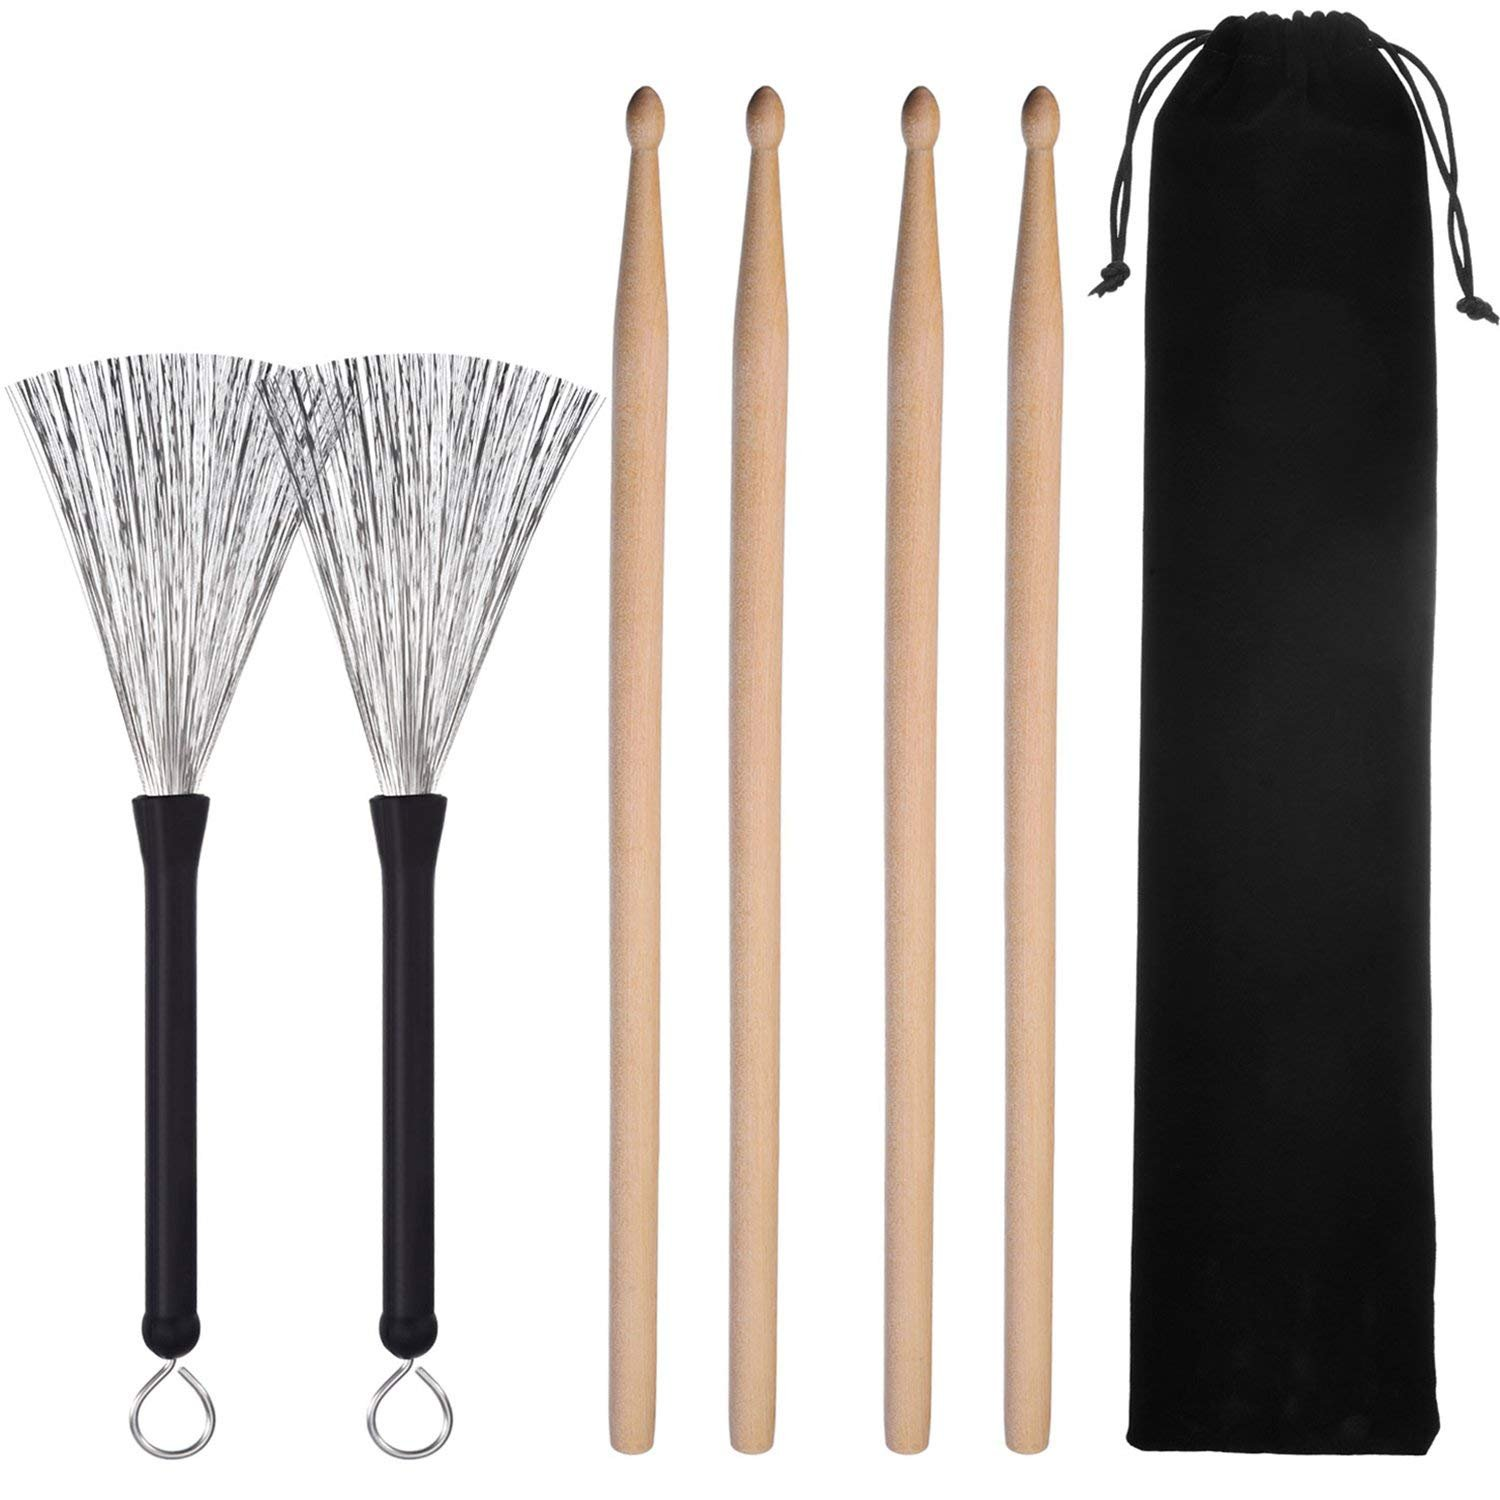 ShiningLove 2 Pair 5A Maple Wood Drum Sticks Classic Drumsticks Sets + 1 Pair Drum Wire Retractable Drum Sticks Brush + 1 Storage Bag